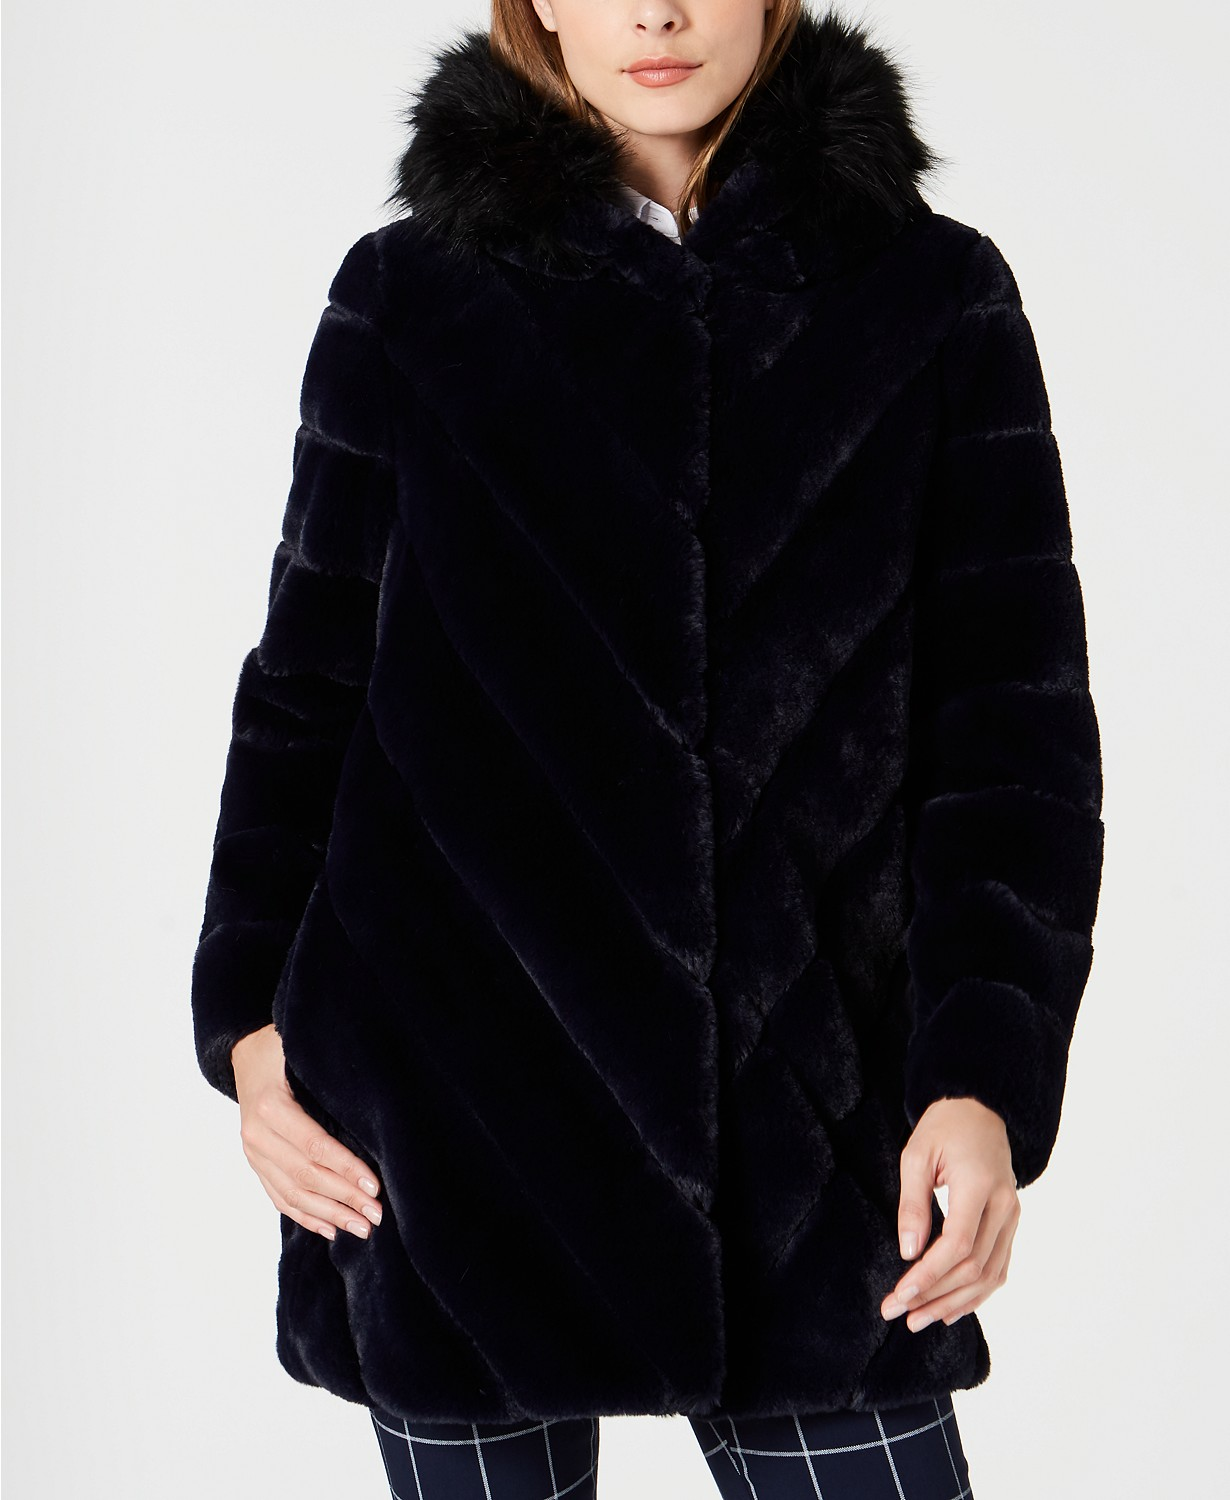 https://www.macys.com/shop/product/calvin-klein-hooded-faux-fur-coat?ID=9000164&CategoryID=269#fn=sp%3D1%26spc%3D7%26ruleId%3D78%26kws%3Dcalvin%20klein%20faux%20fur%20hooded%20coat%26ackws%3DCalvin%20Klein%20Faux-Fur%20Coat%26searchType%3Dac%26searchPass%3DexactMultiMatch%26slotId%3D1